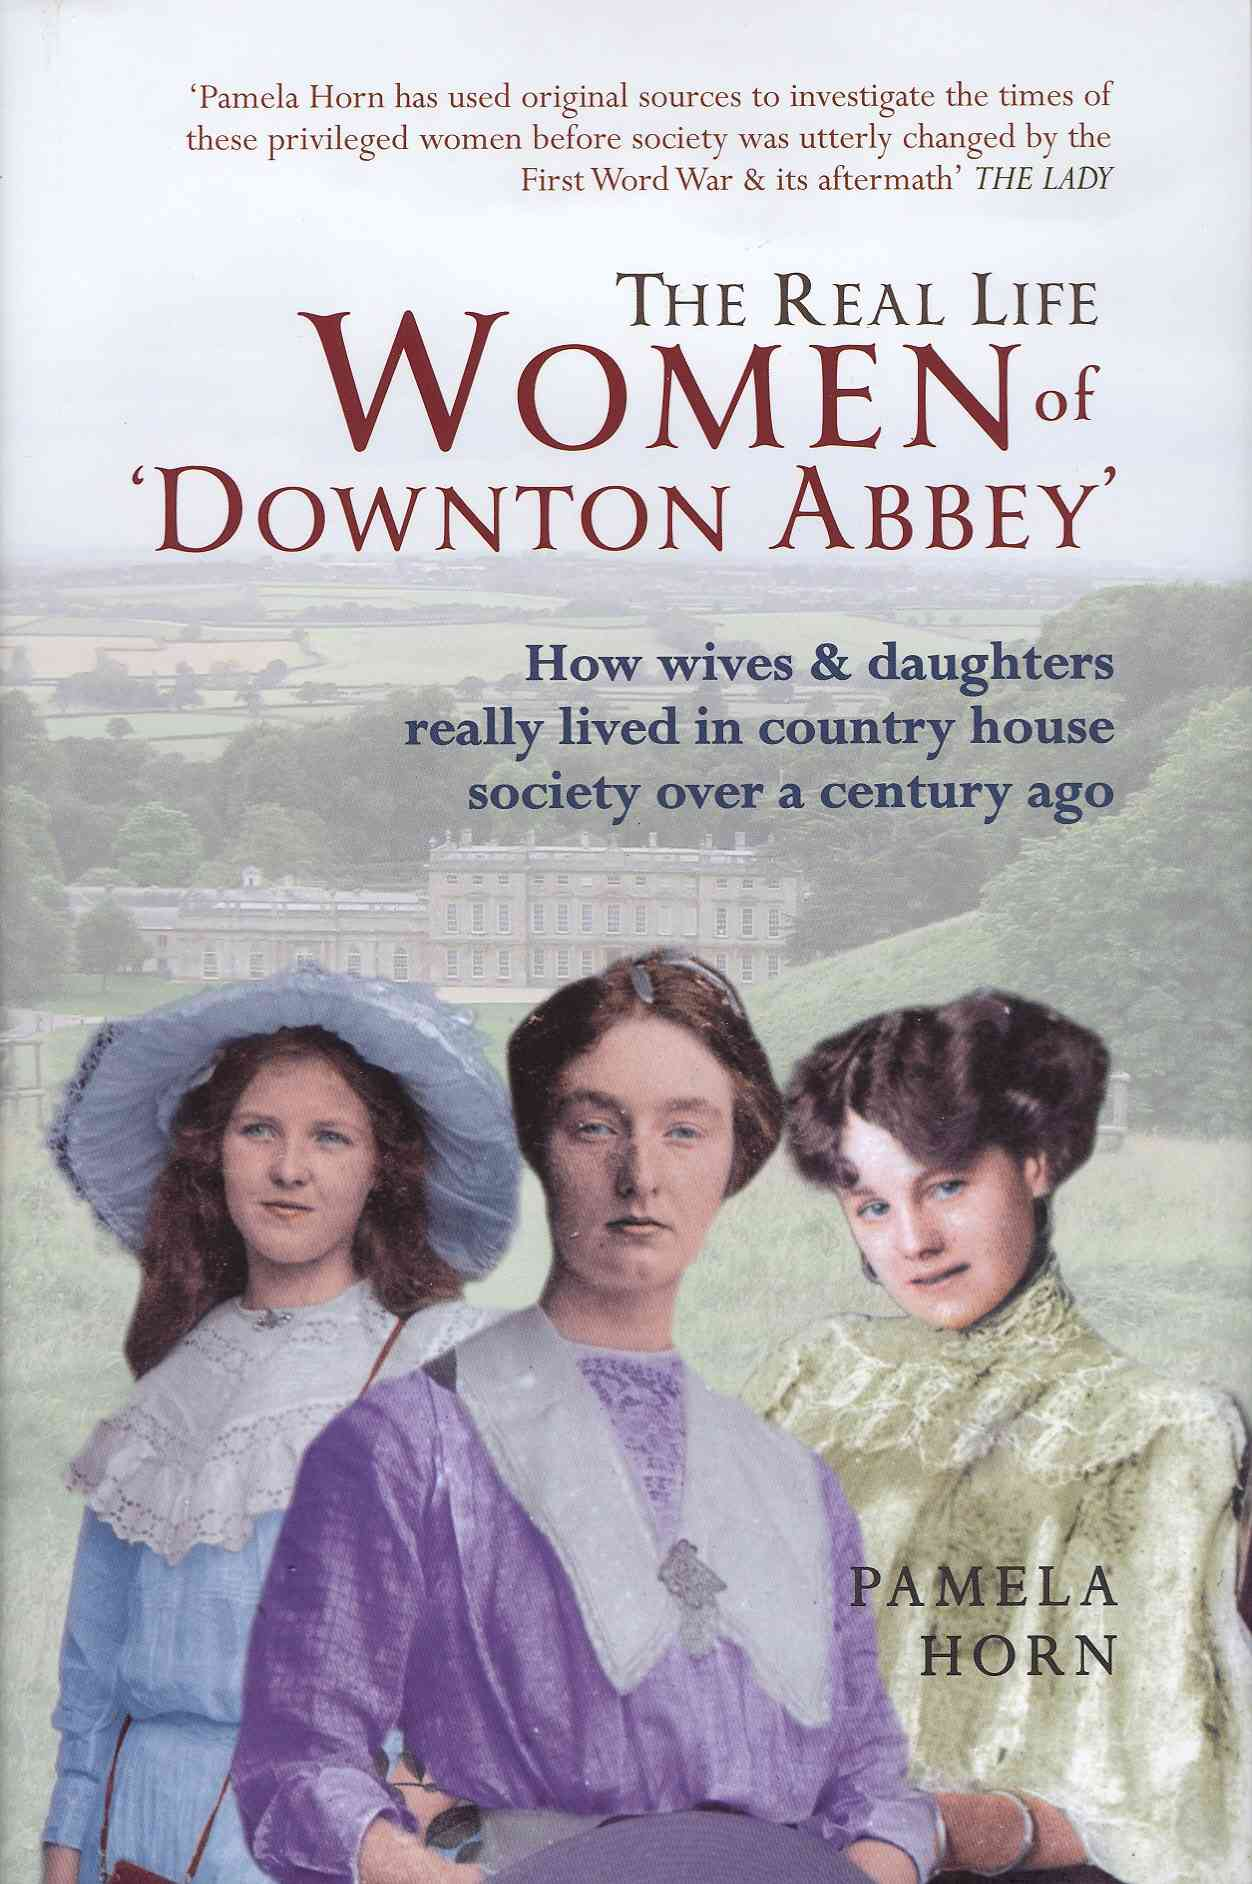 The Real Life Women of Downton Abbey